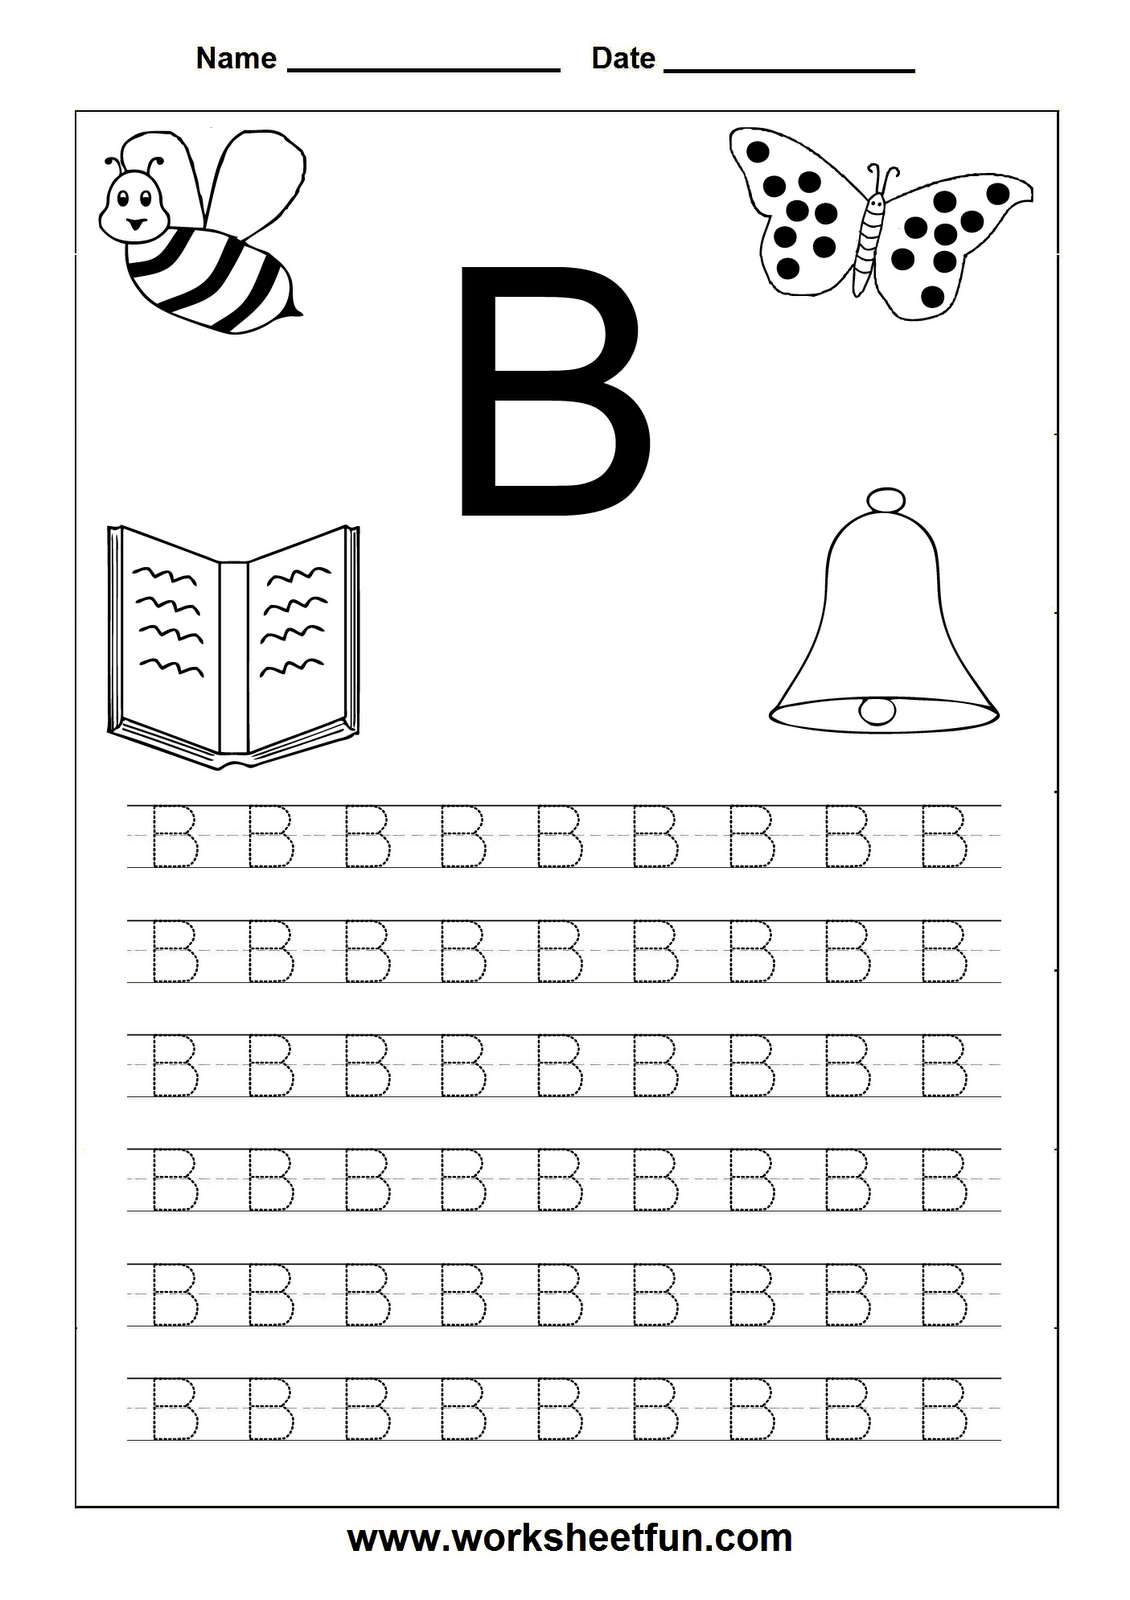 math worksheet : 1000 images about tracing on pinterest  tracing worksheets  : Tracing Alphabet Worksheets For Kindergarten